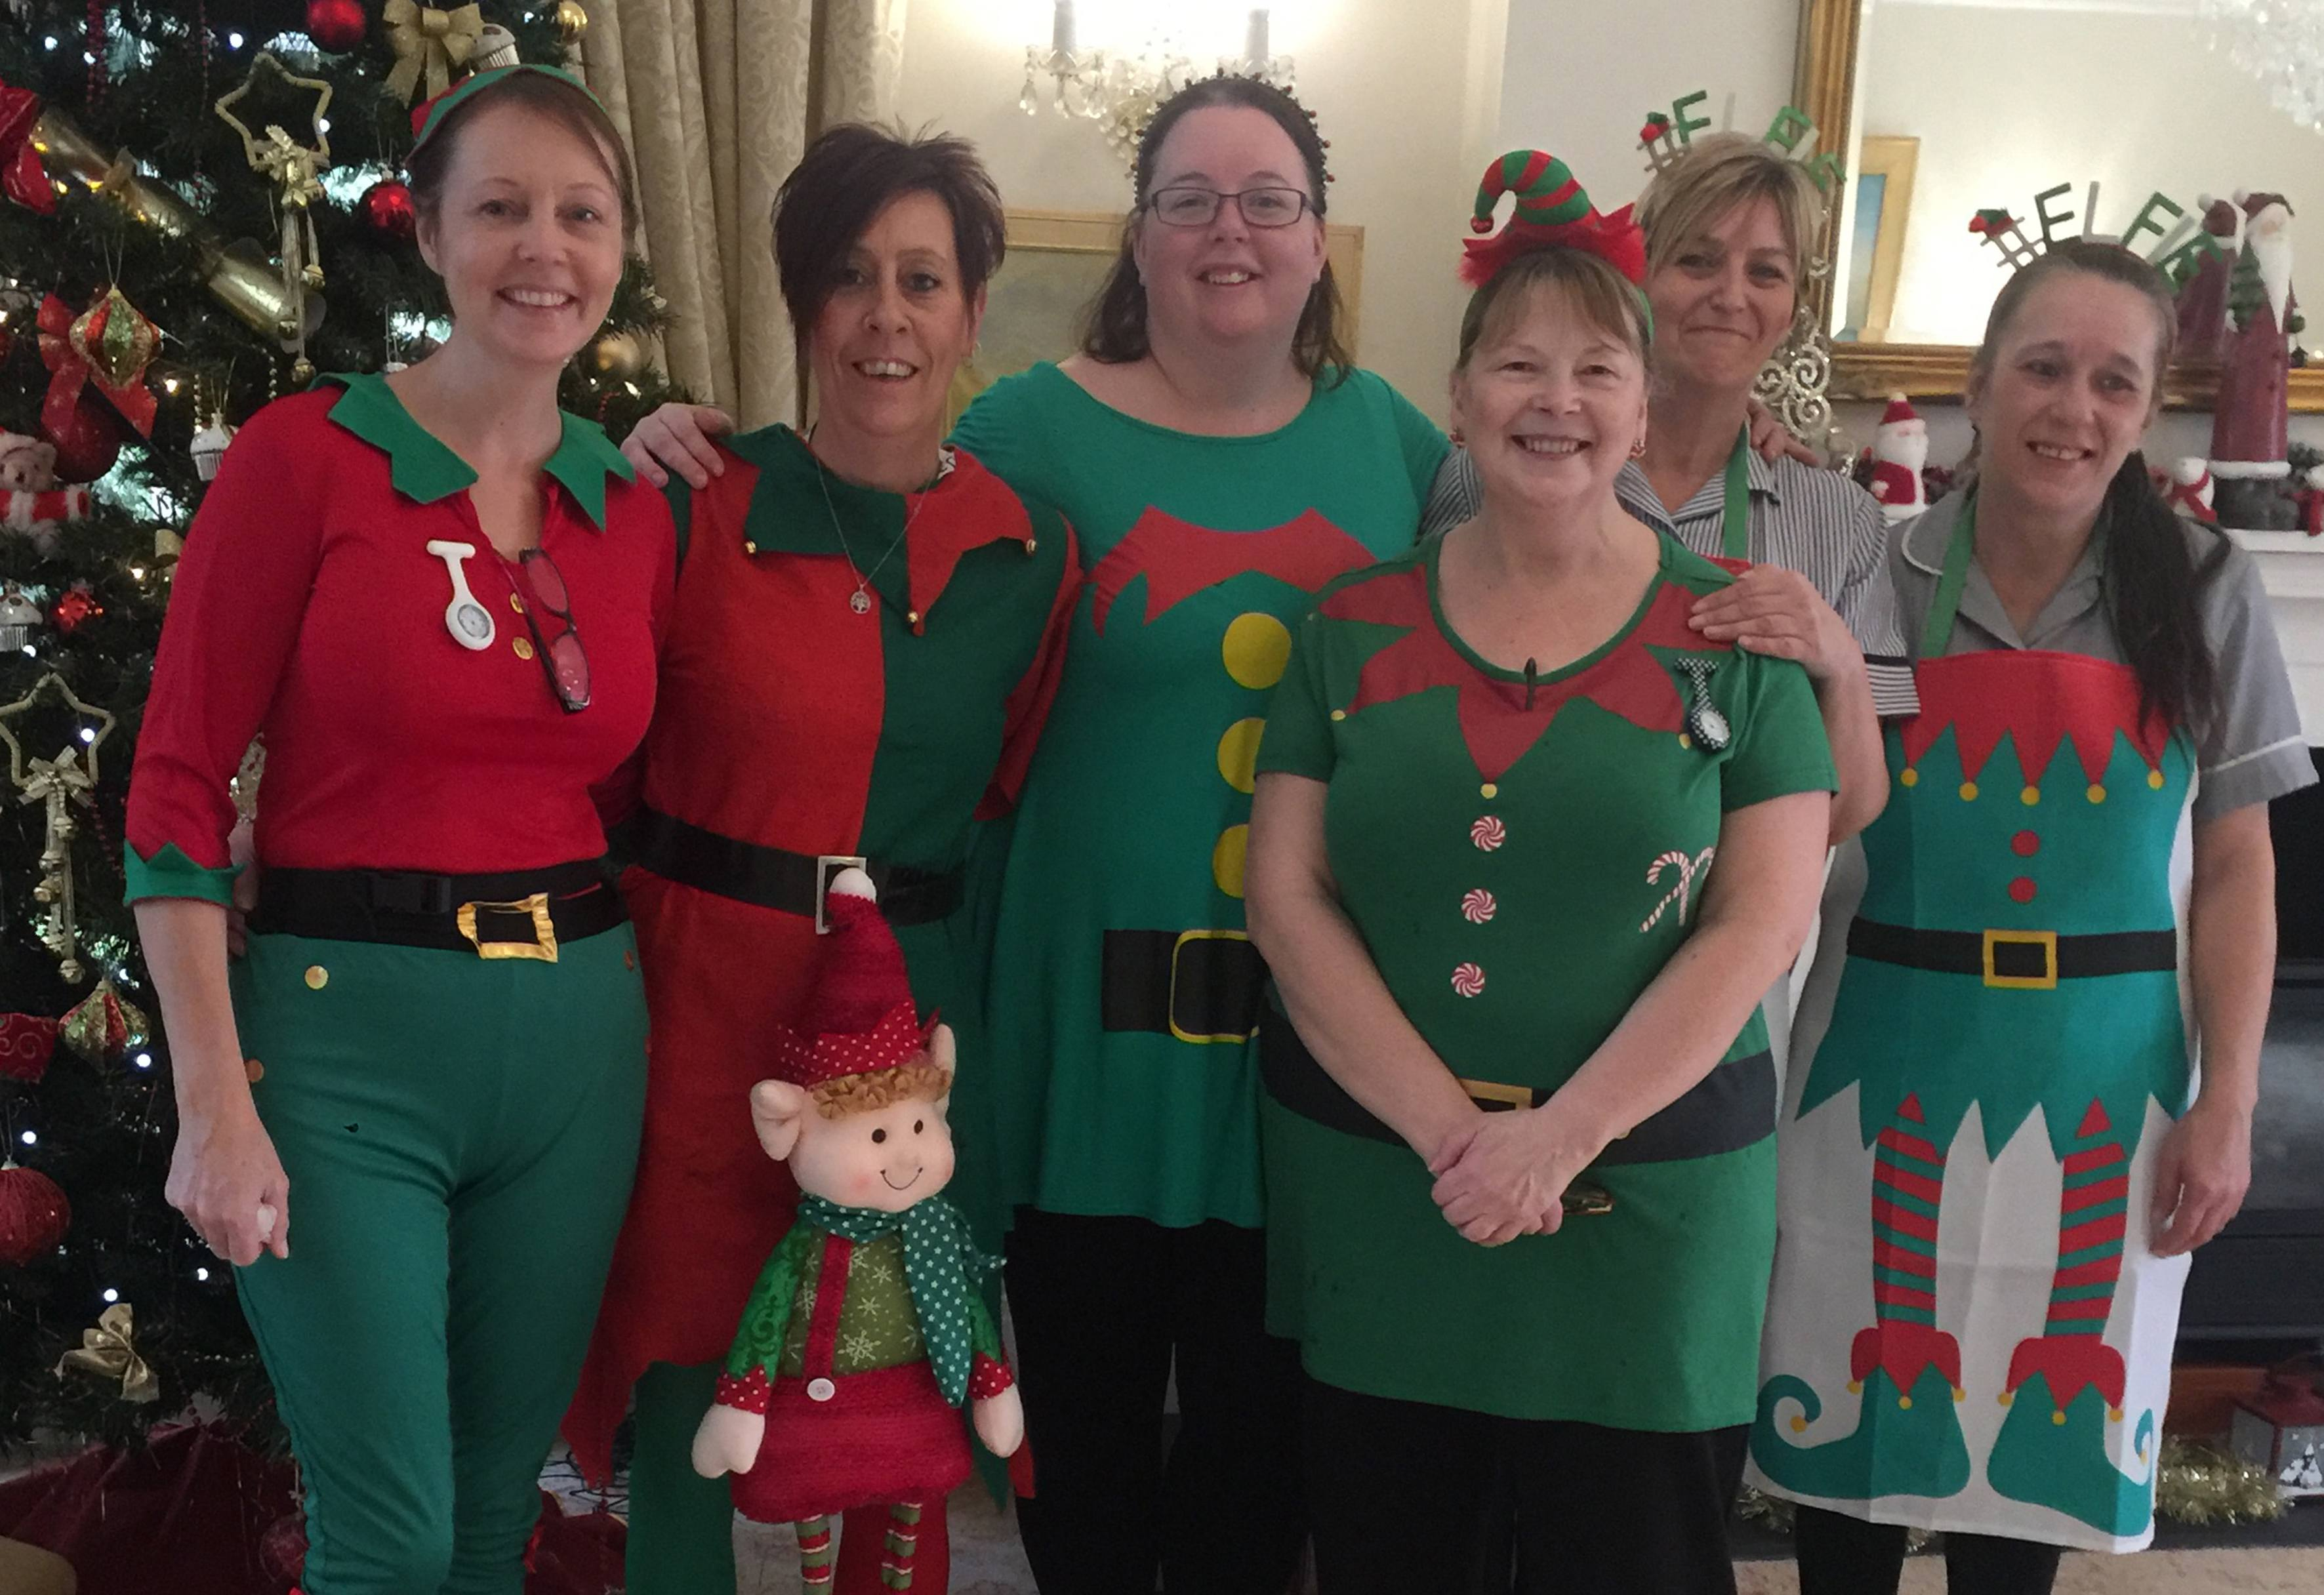 Blackbrook House staff in their elf costumes